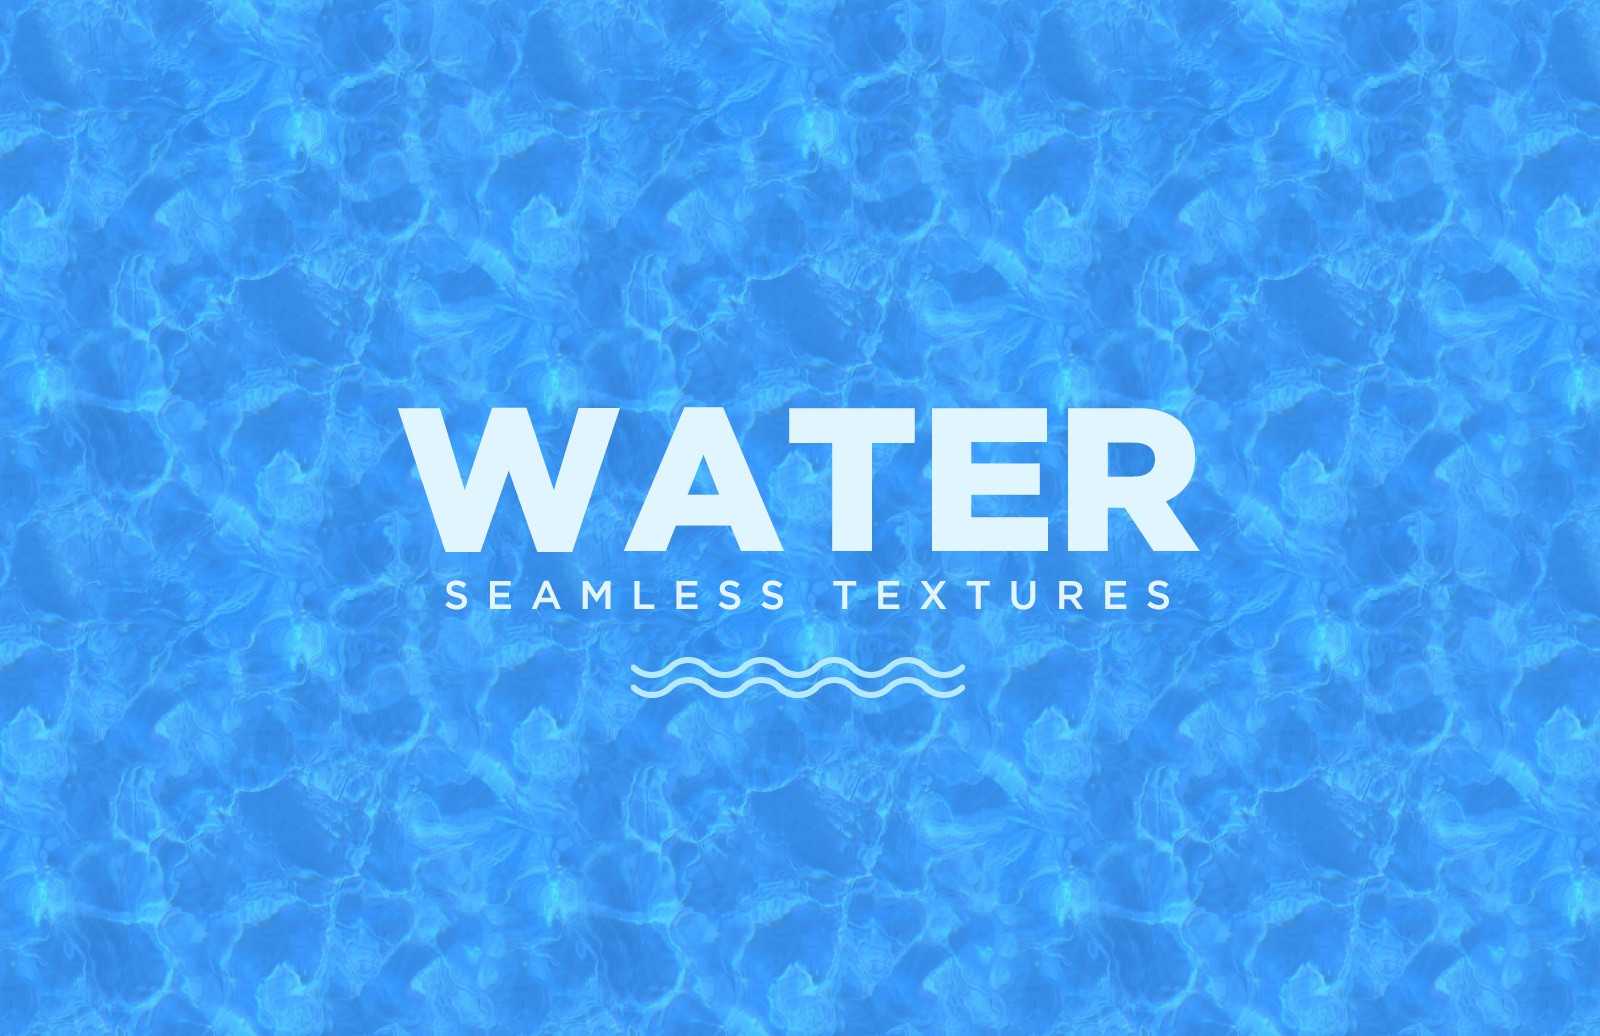 Seamless Water Textures